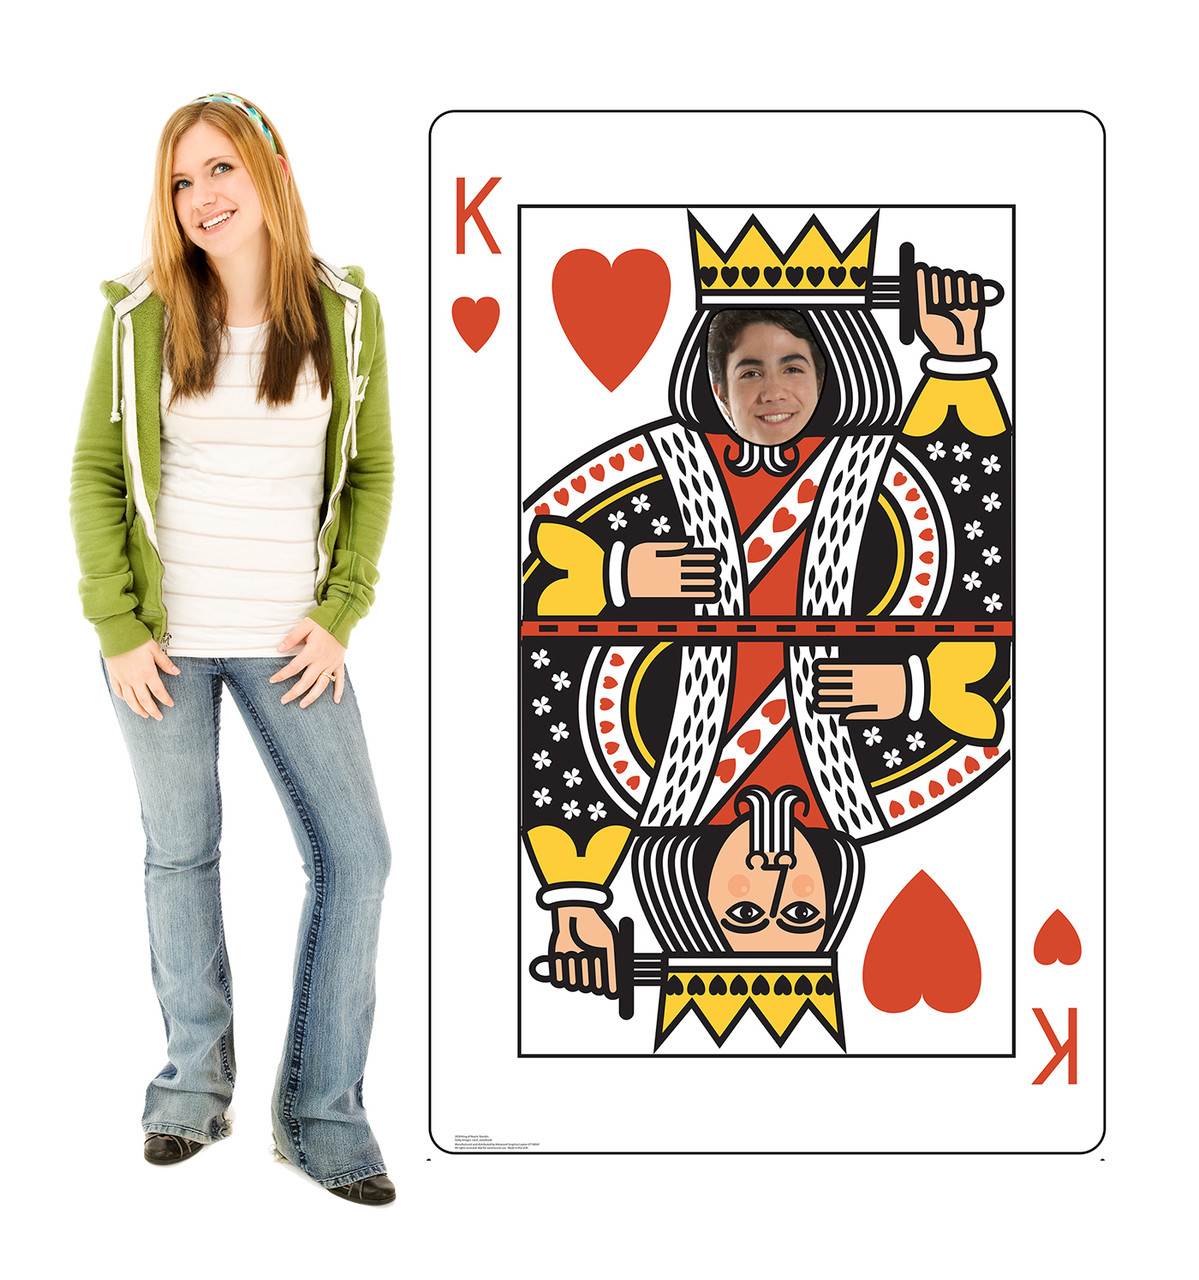 Life-size cardboard standee of the King of Hearts Card standin with model.